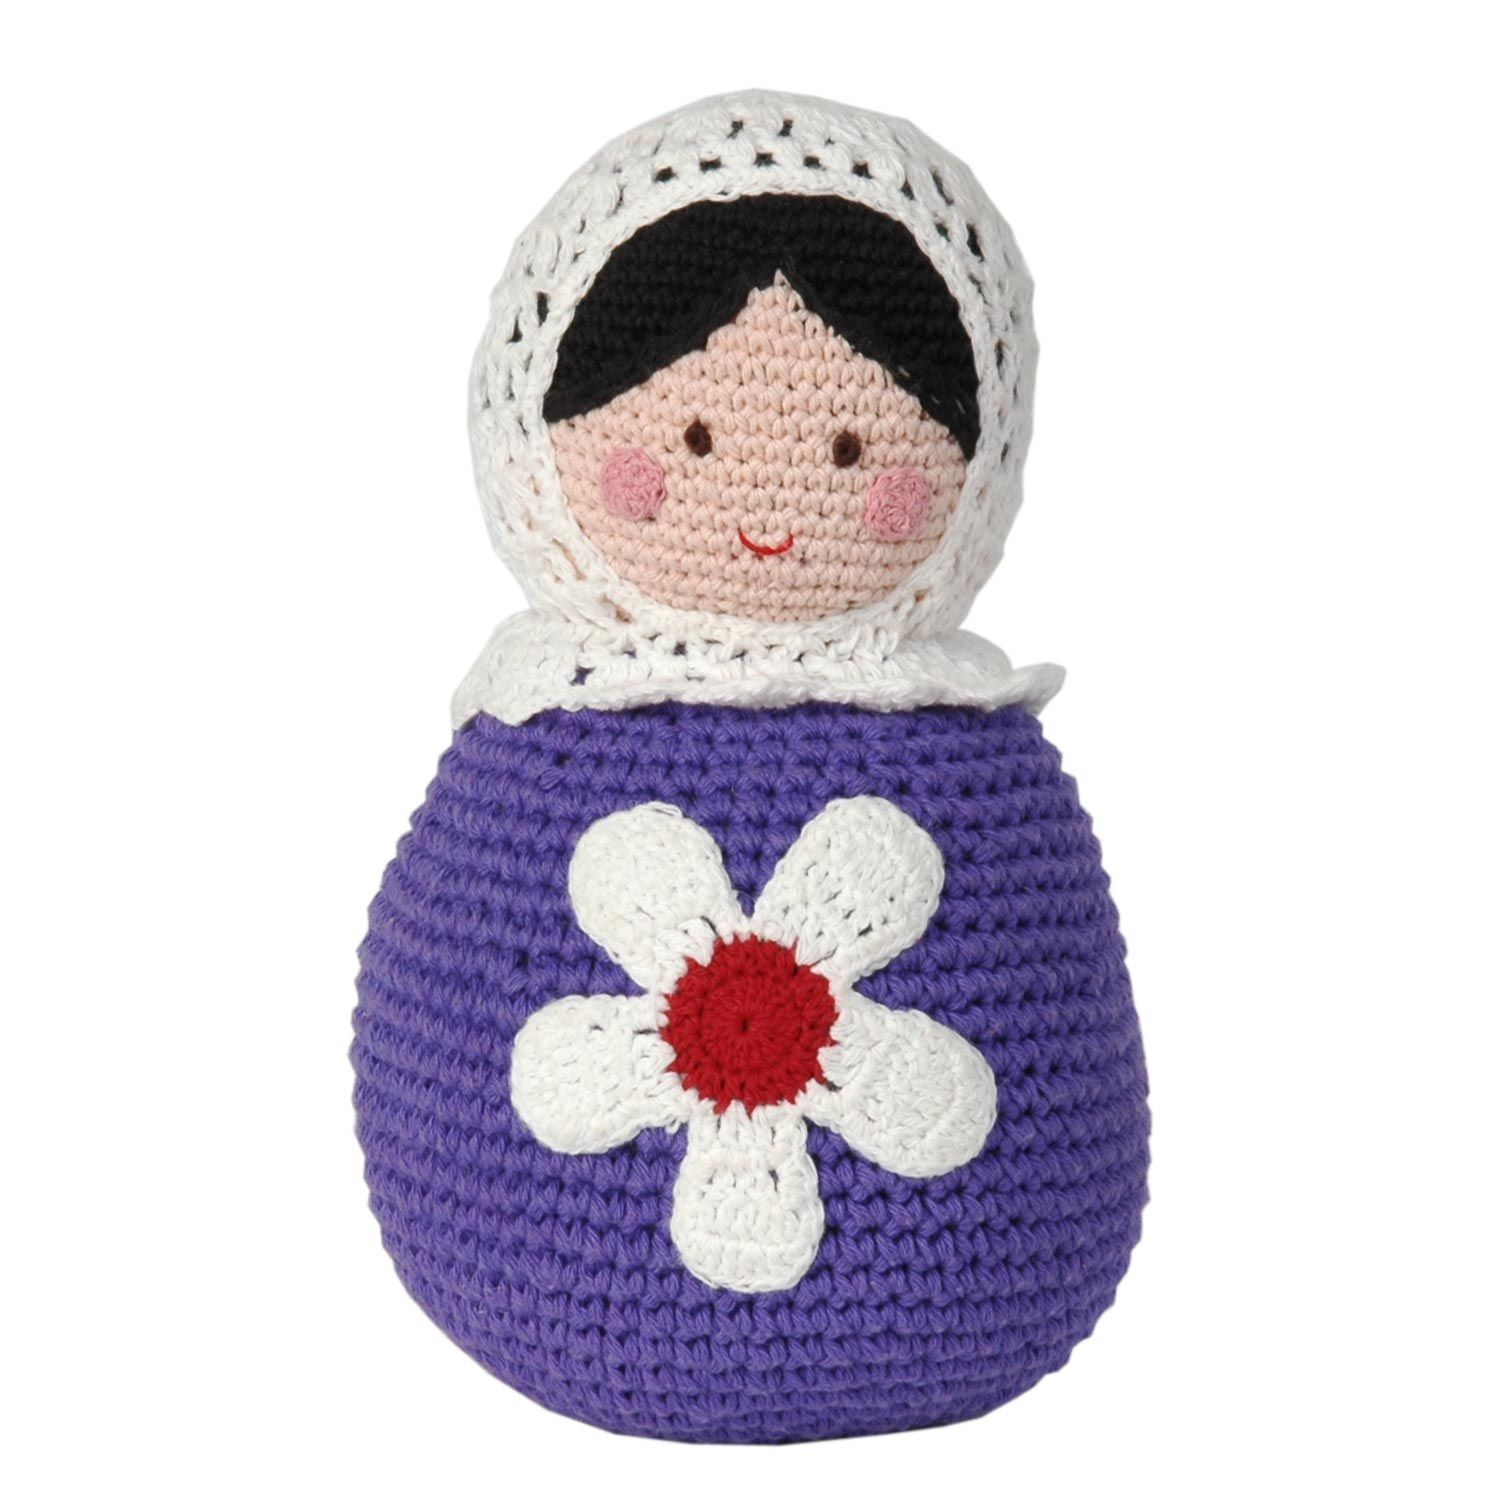 Crocheted Matryoshka Russian Dolls Russia Pinterest Puppe